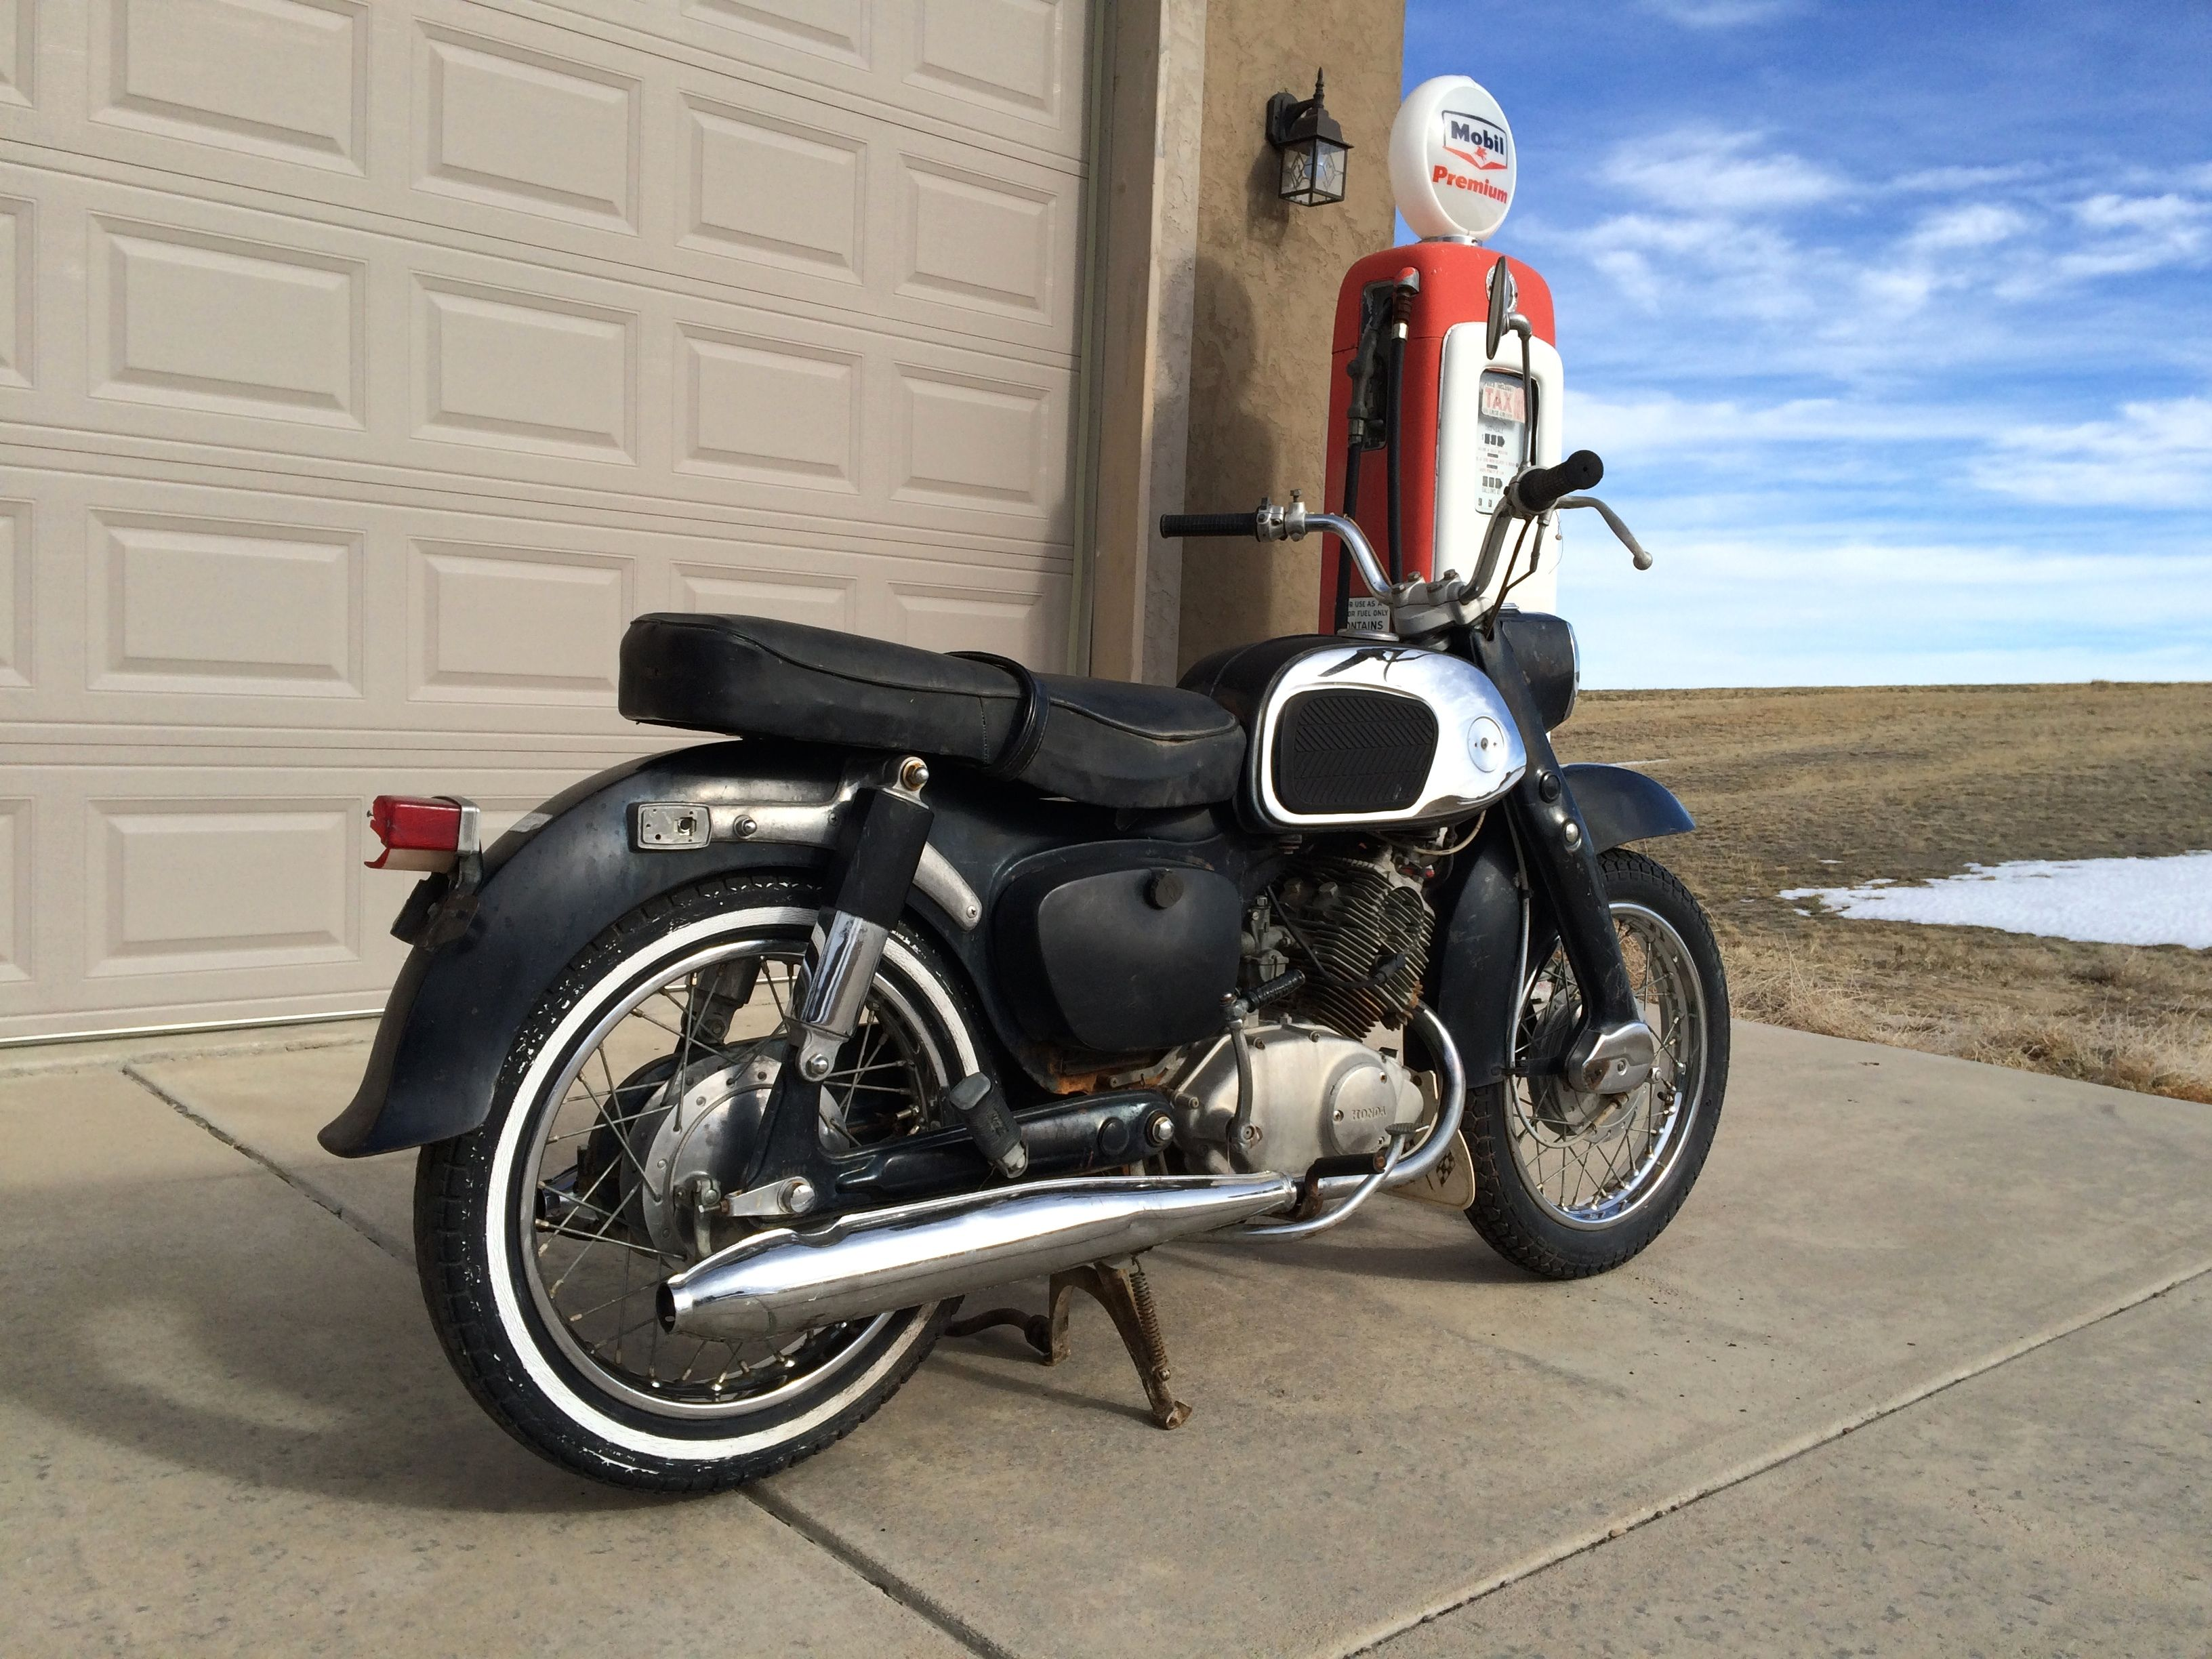 1965 Honda CA95 - 150cc 4spd. Will be used for parts to ...